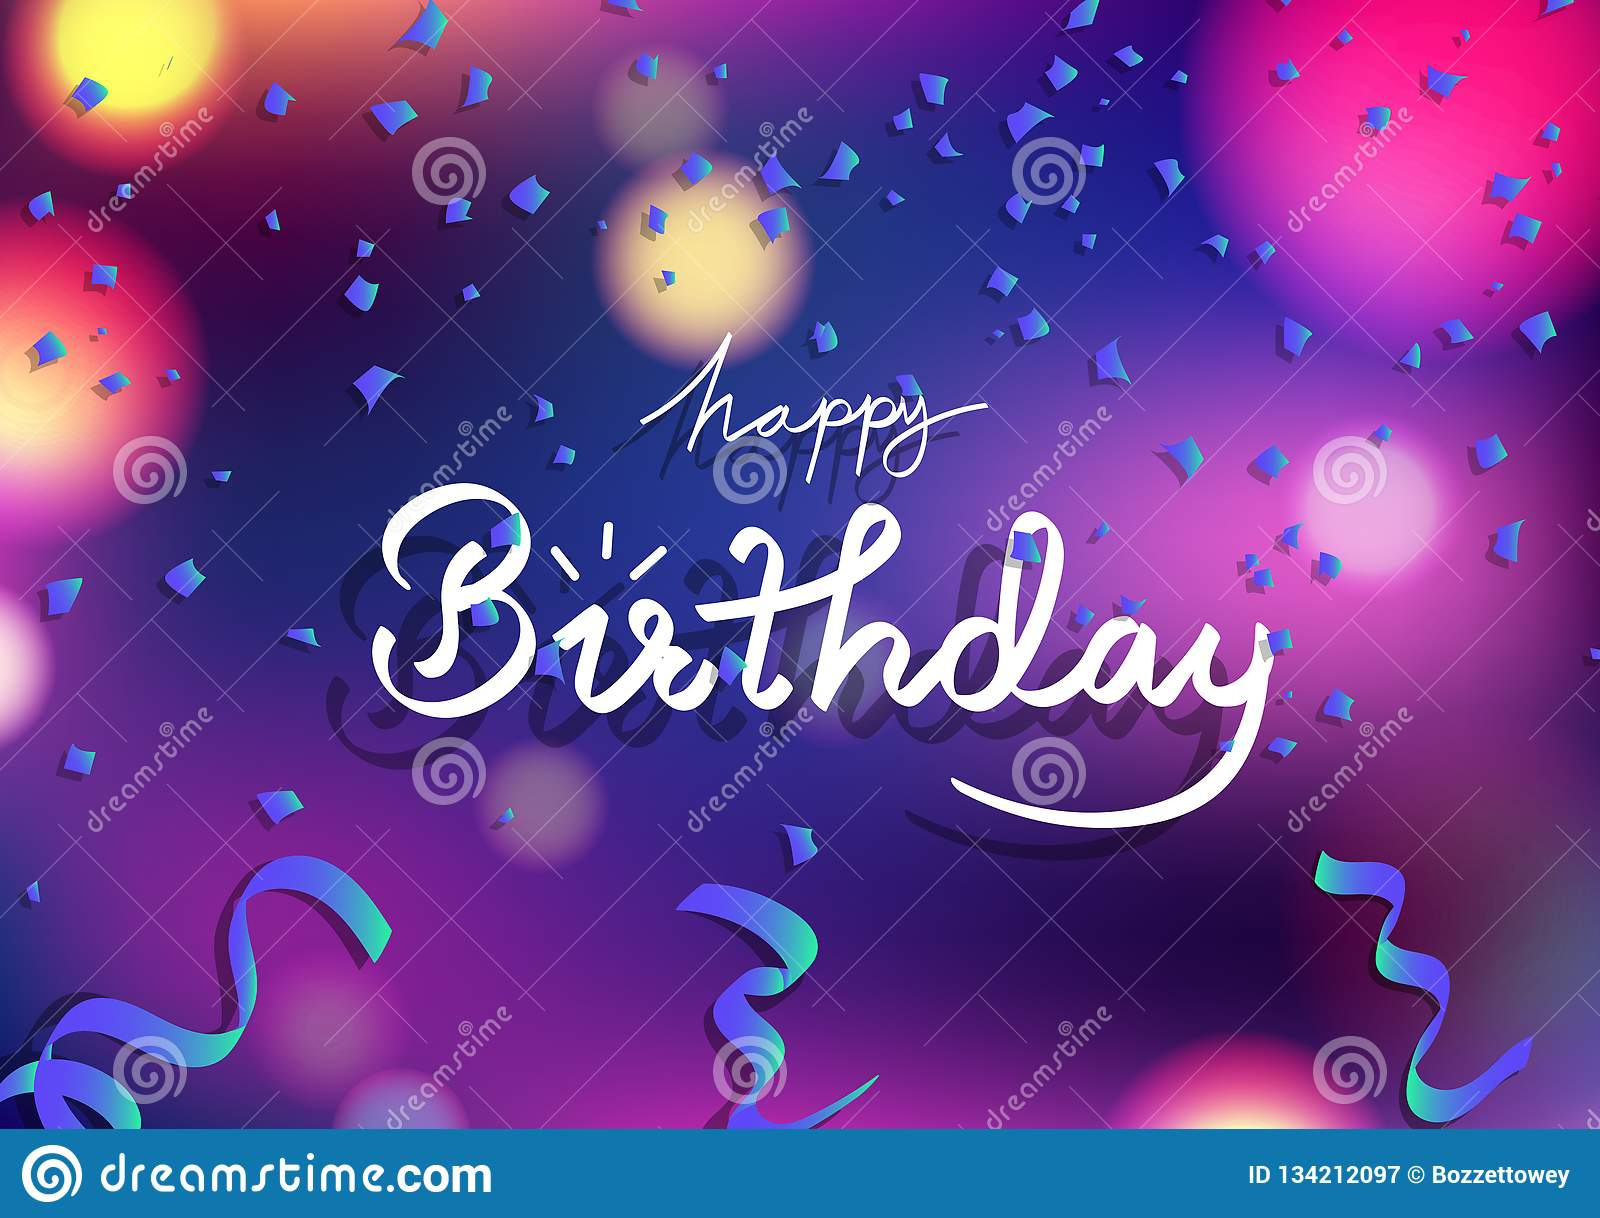 Happy Birthday Card, Blue Fantasy Ribbons Scatter And